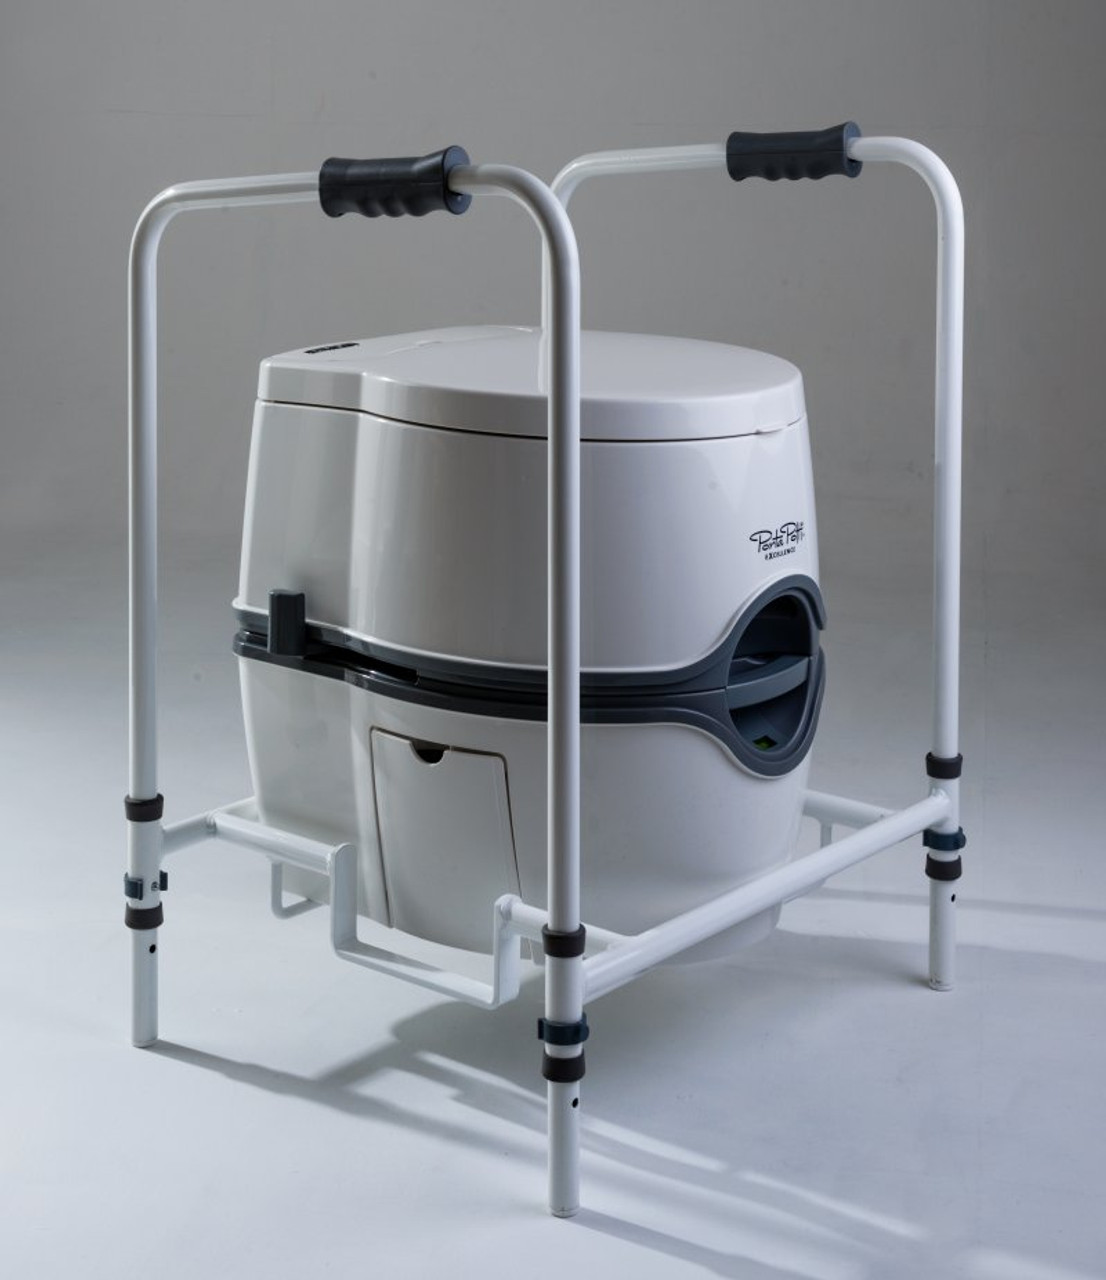 Portable temporary toilet frame for disabled and elderly users with 165 Porta Potti Excellence lid closed